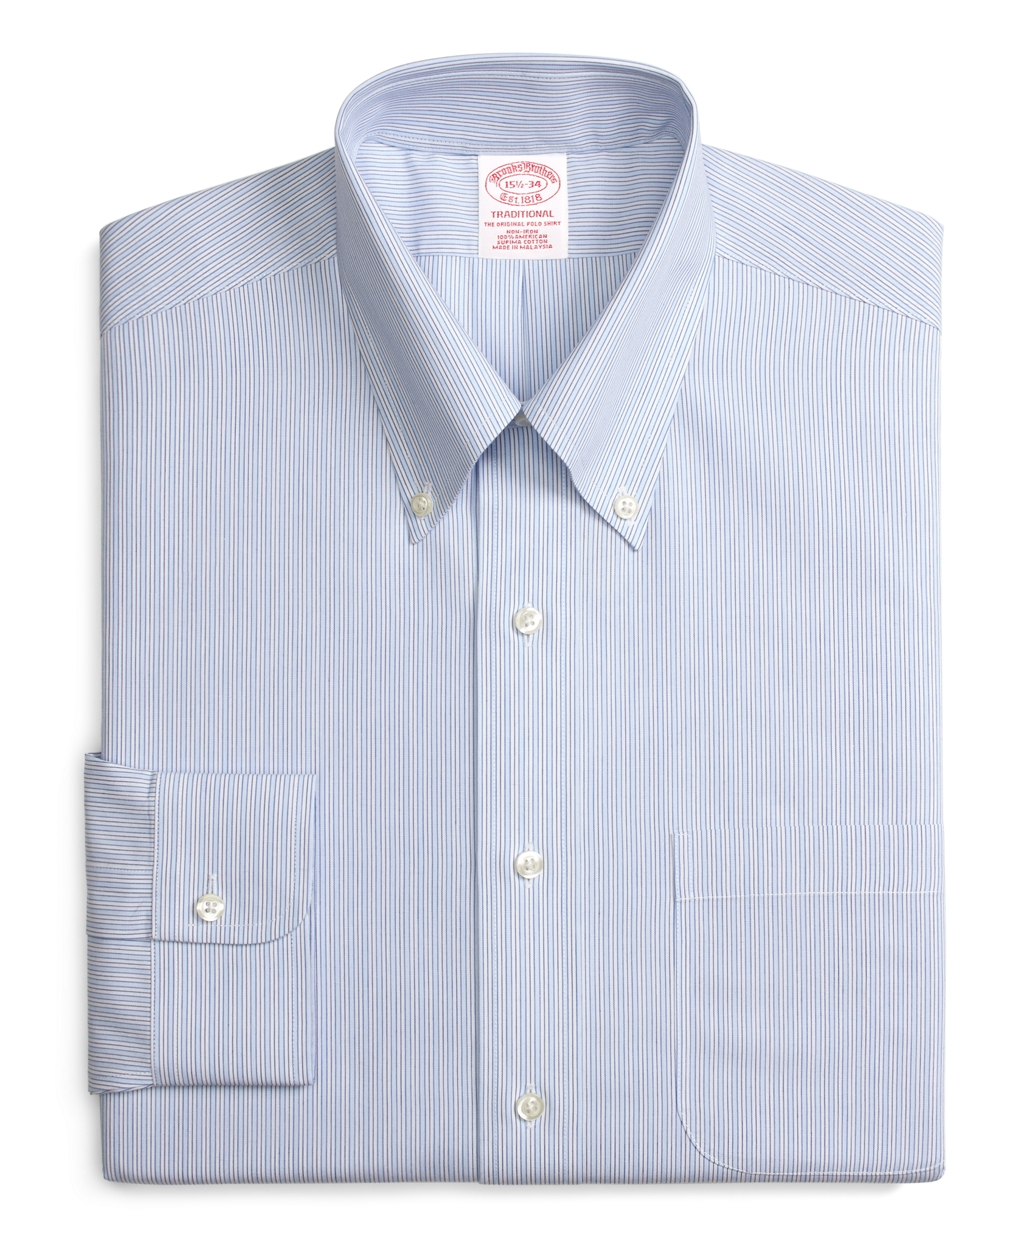 Brooks brothers non iron traditional fit split stripe for Brooks brothers non iron shirts review